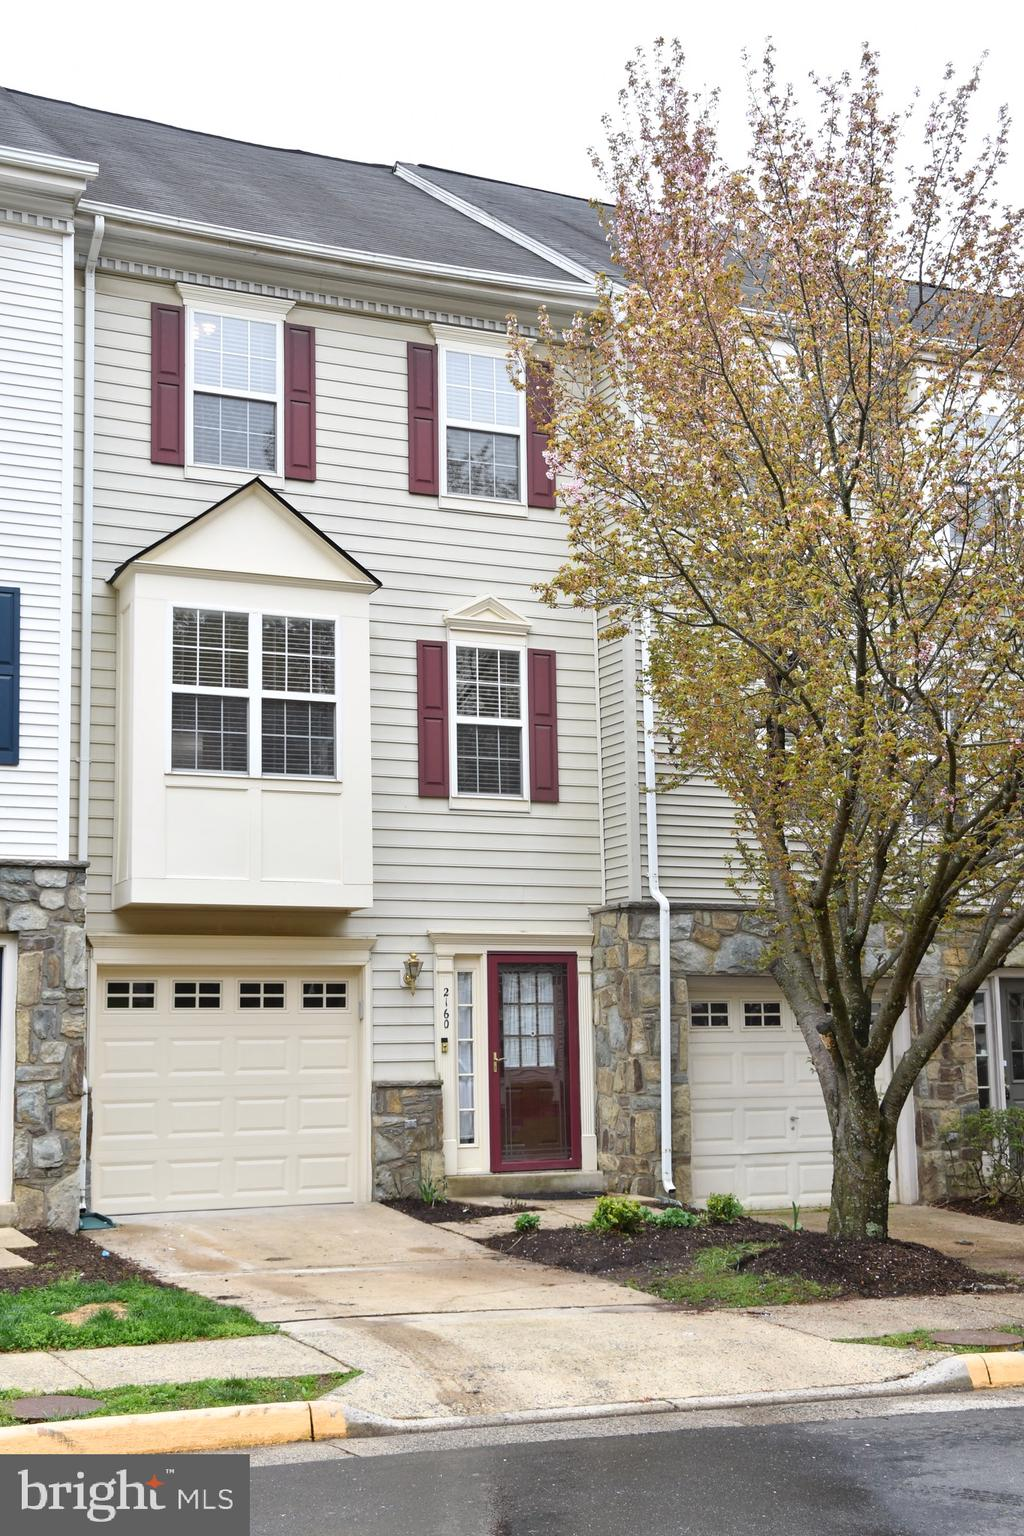 Welcome to this townhome with 3 bedroom, 3 full-bathroom and 2 half-bathroom very well-maintained wi